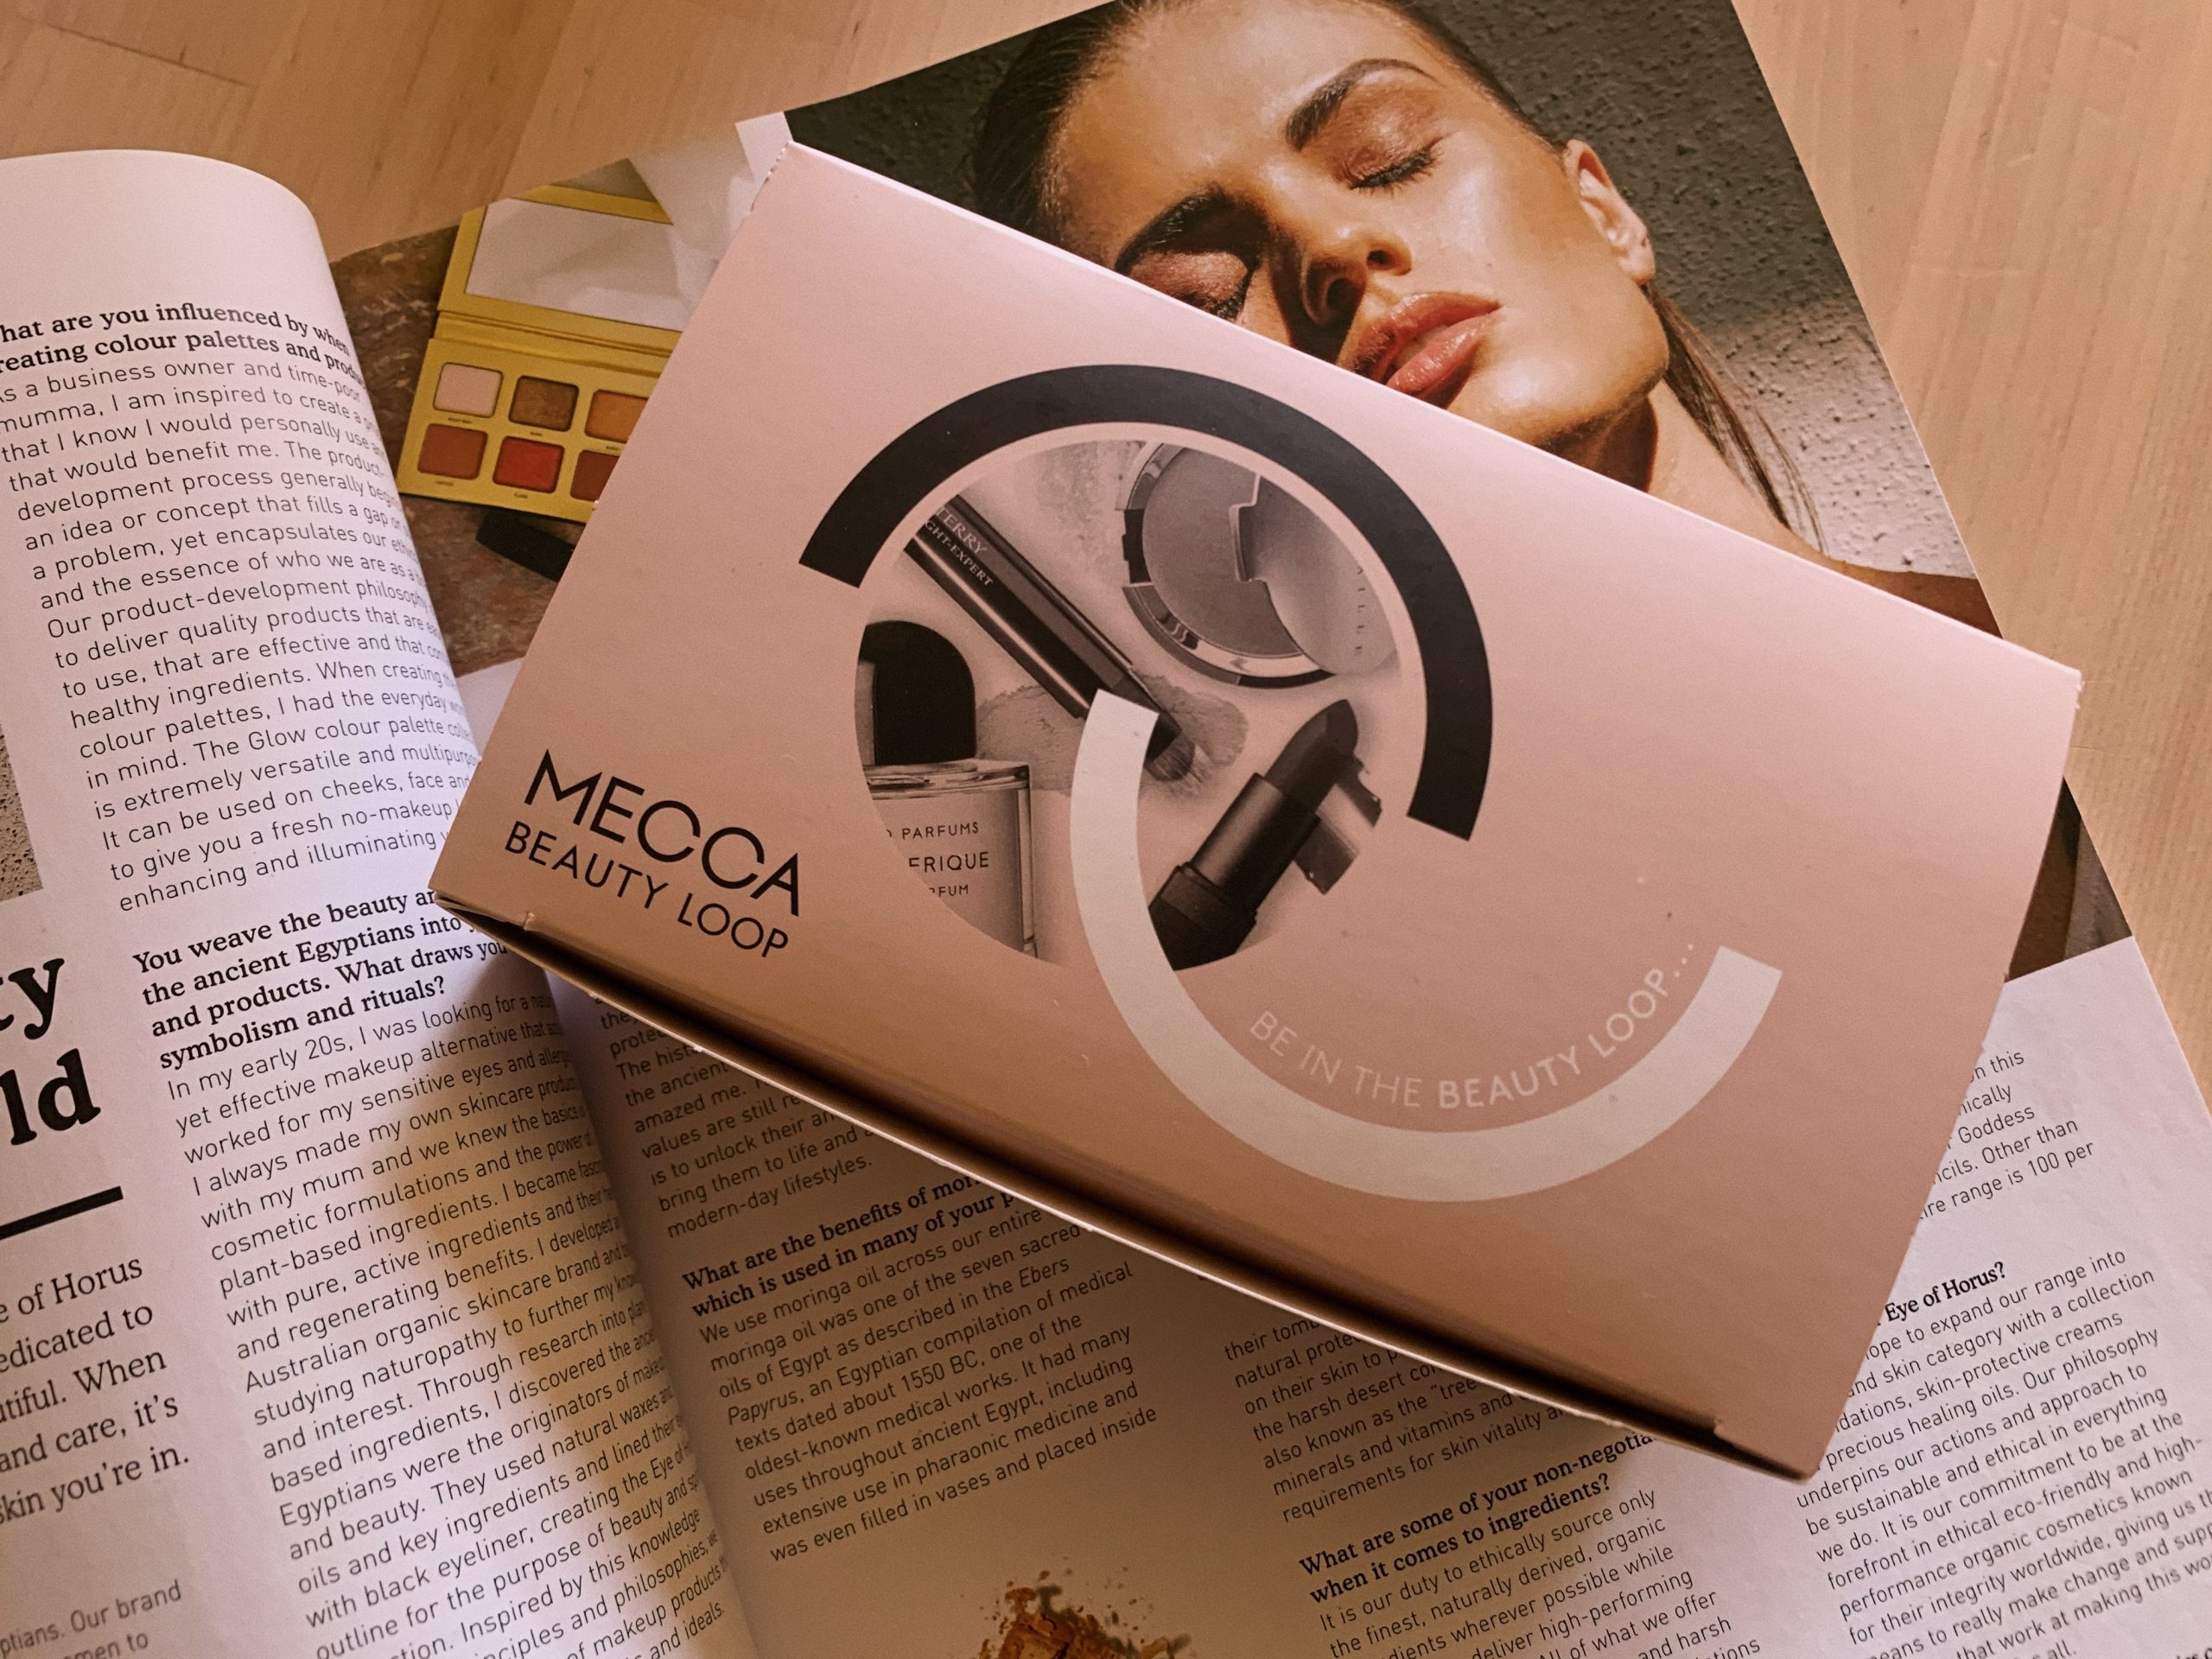 mecca beauty loop box makeup sephora level 1 level 2 level 3